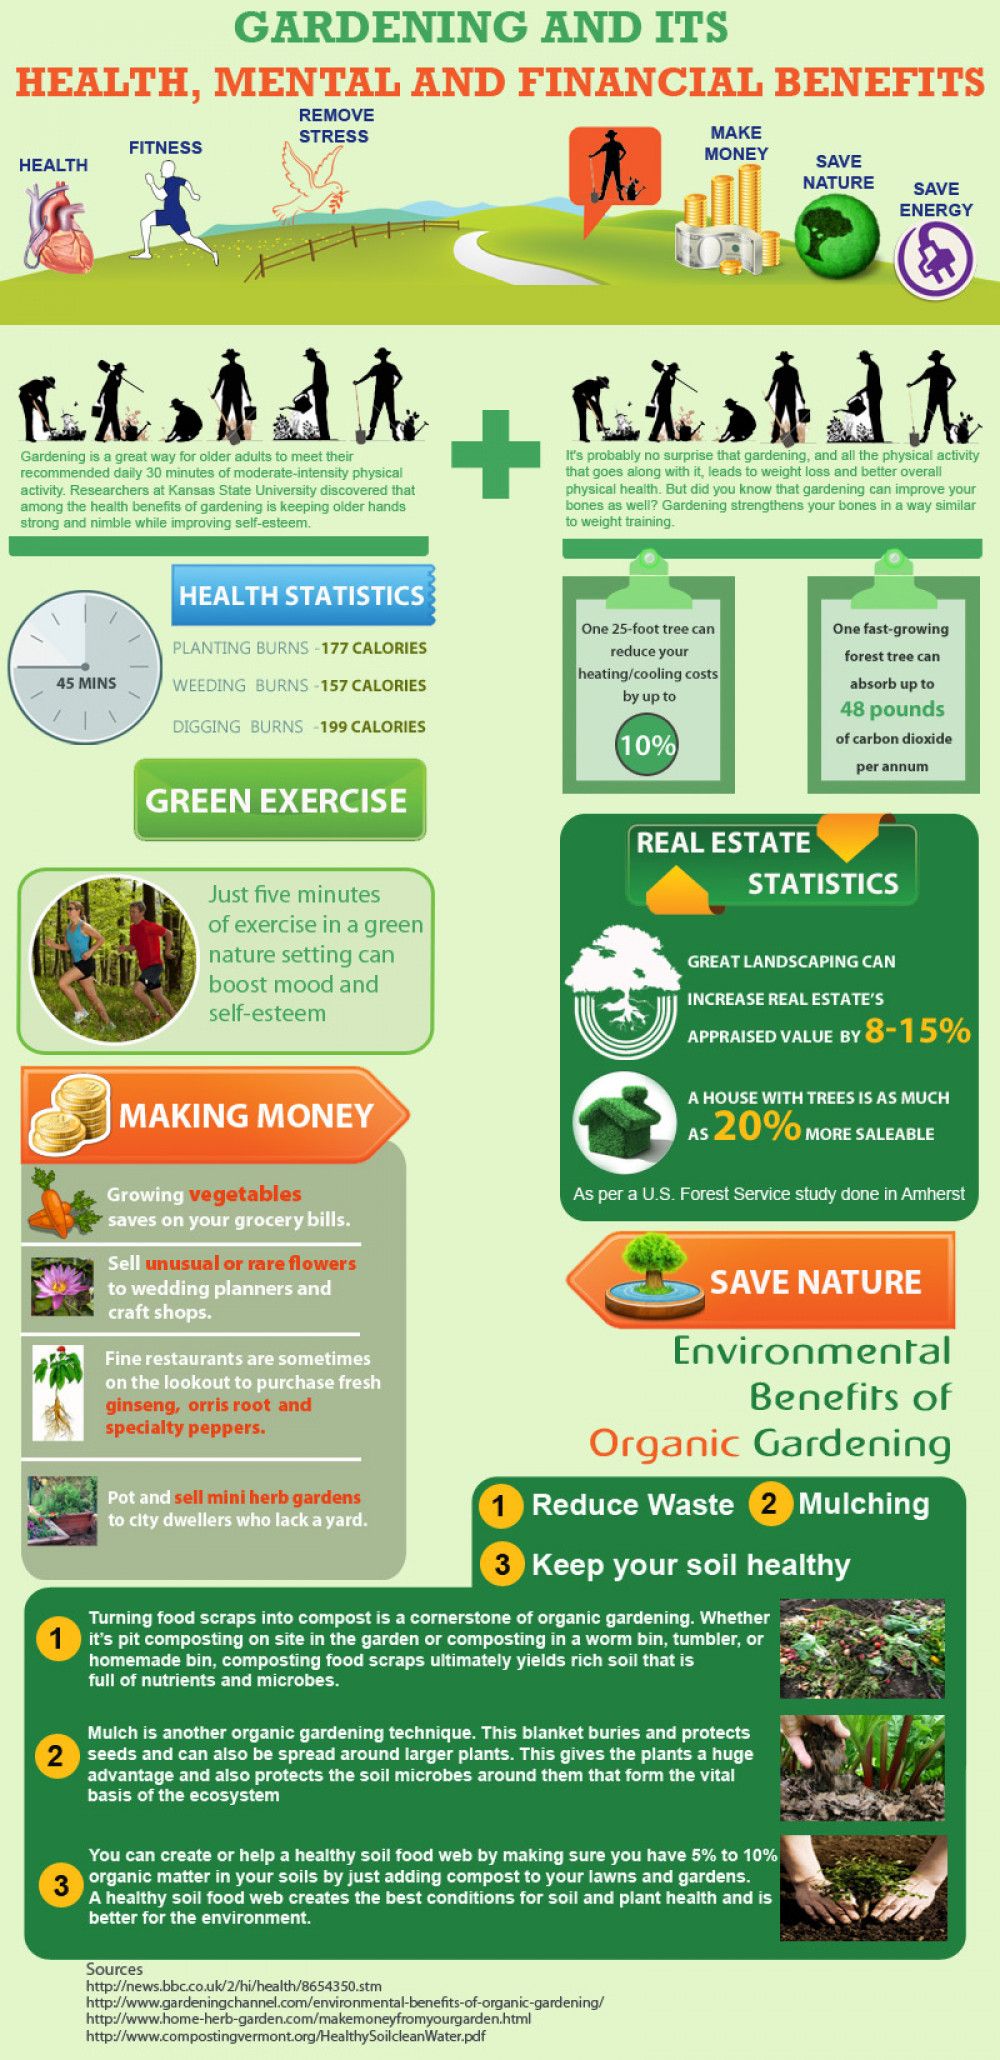 Gardening and Its Health, Mental and Financial Benefits